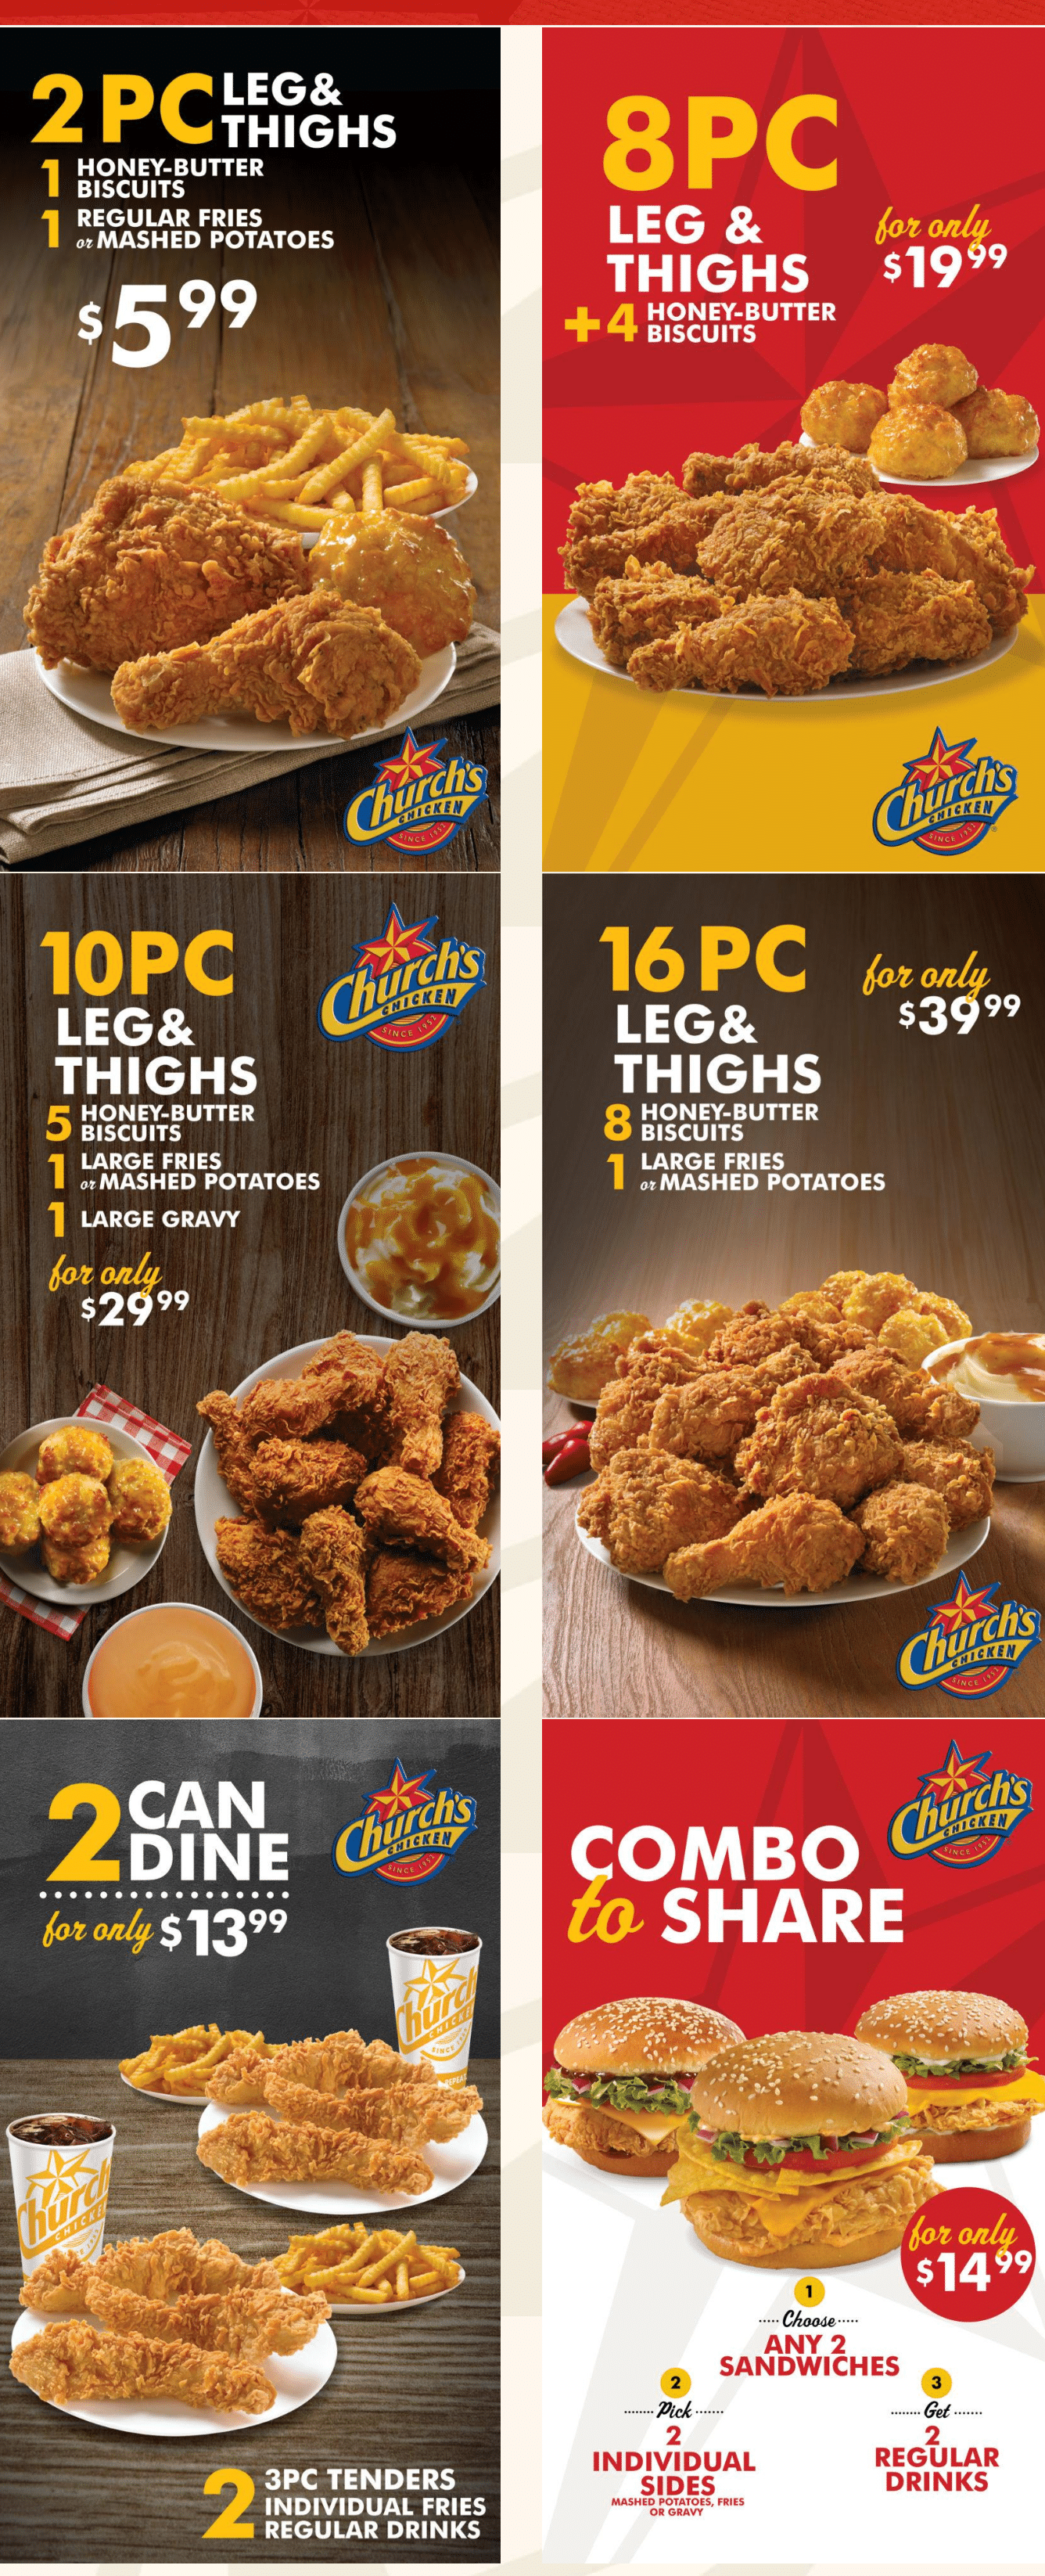 image about Church's Chicken Printable Coupons named Churchs Bird Discount coupons - $2 OFF Sandwich Combinations and Purchase 10